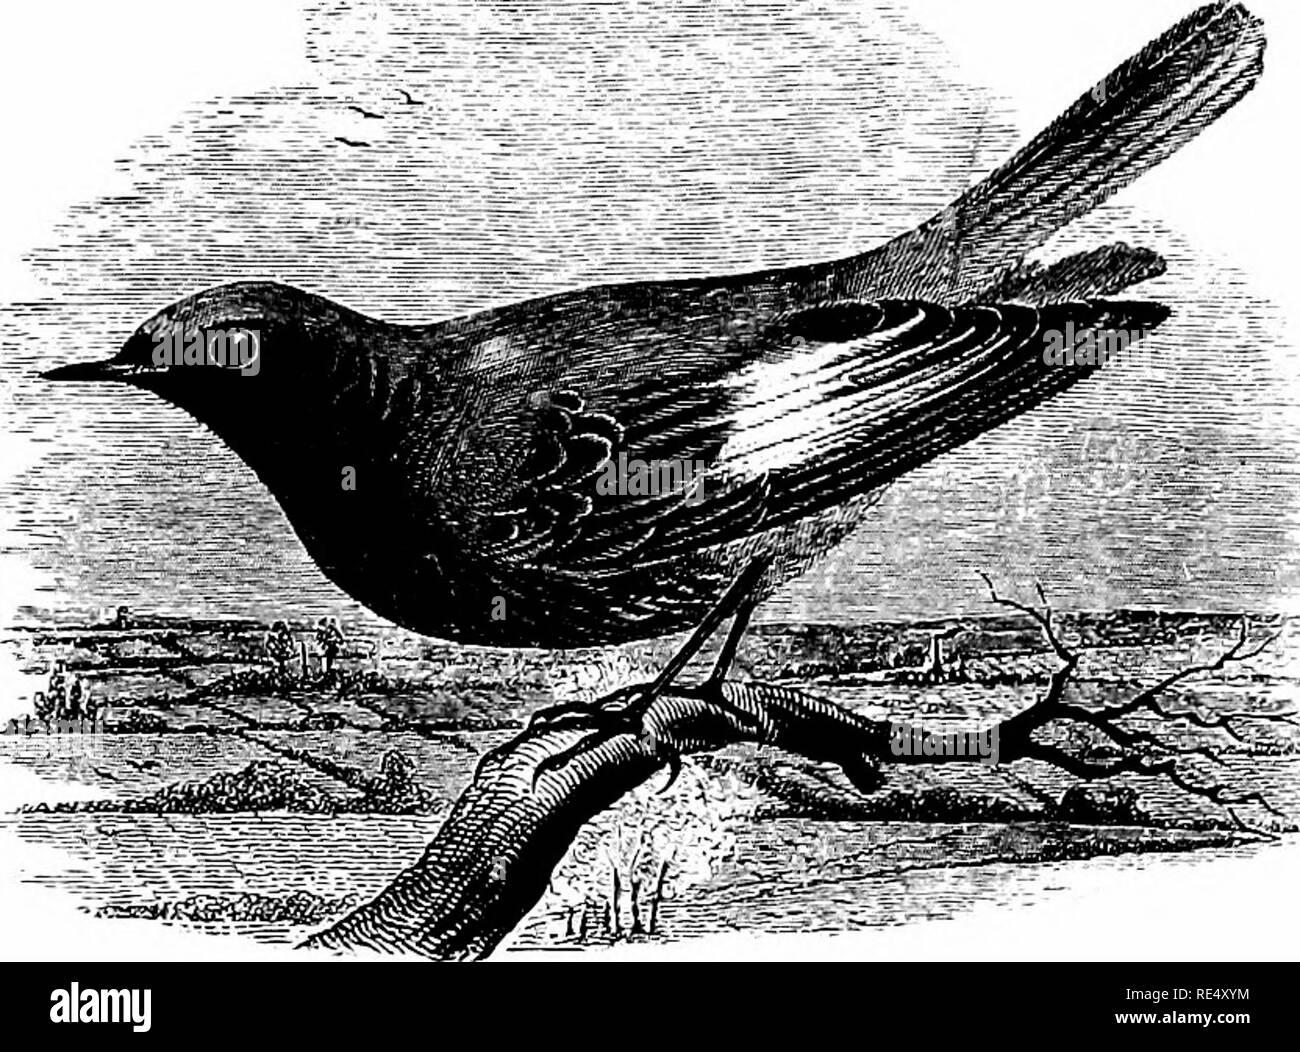 . An illustrated manual of British birds. Birds. TURDIN^. 33. THE BLACK REDSTART. RuTicfLLA tItys (Scopoli). The Black Redstart, formerly considered a rare bird, is now a well-known visitor to many parts of the English coasts in autumn and winter, being, in fact, tolerably common at those seasons in the southern counties, especially in Devon and Cornwall, and remaining till March or April. In the Humber district, and at Flamborough, it is sometimes numerous on both migrations (J. Cordeaux). It has also occurred later in spring, and I saw an adult male at Erping- ham, Norfolk, on May 15th, 1872 - Stock Image